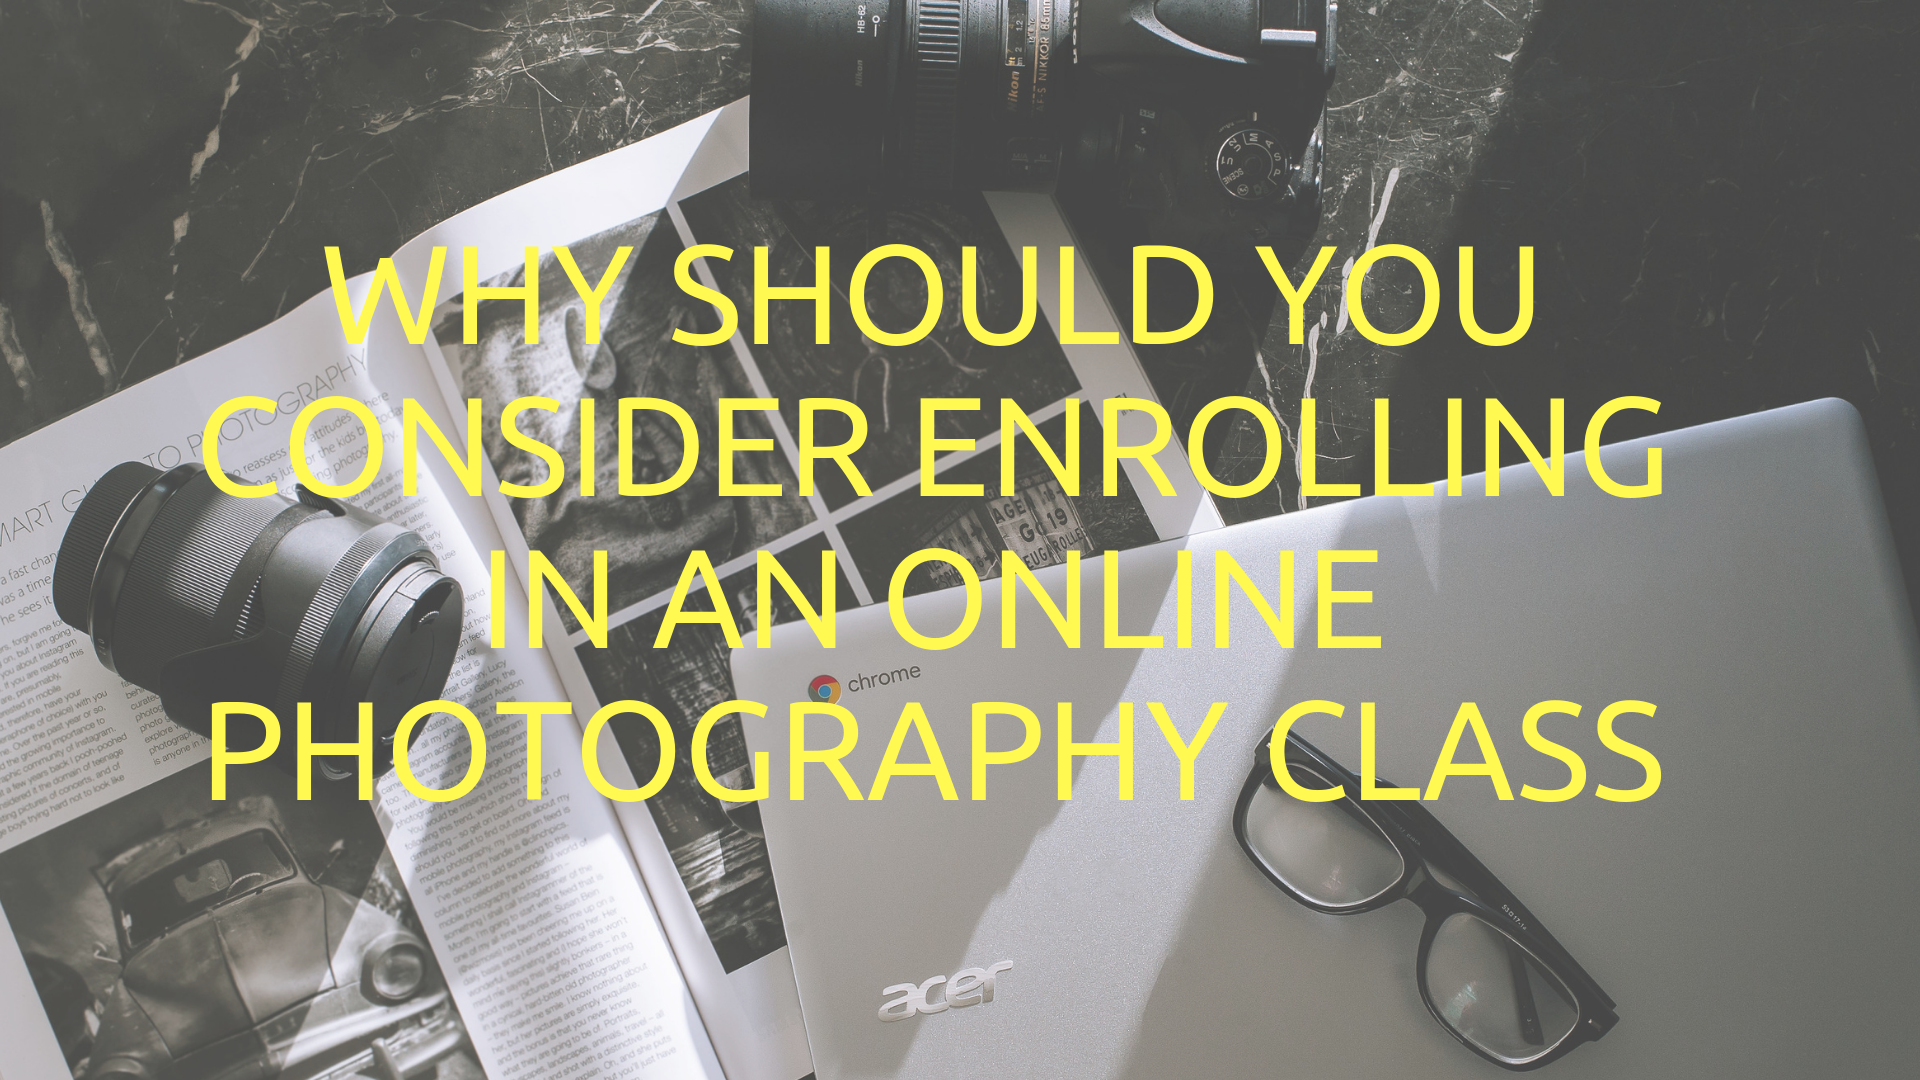 Why Should You Consider Enrolling in an Online Photography Class